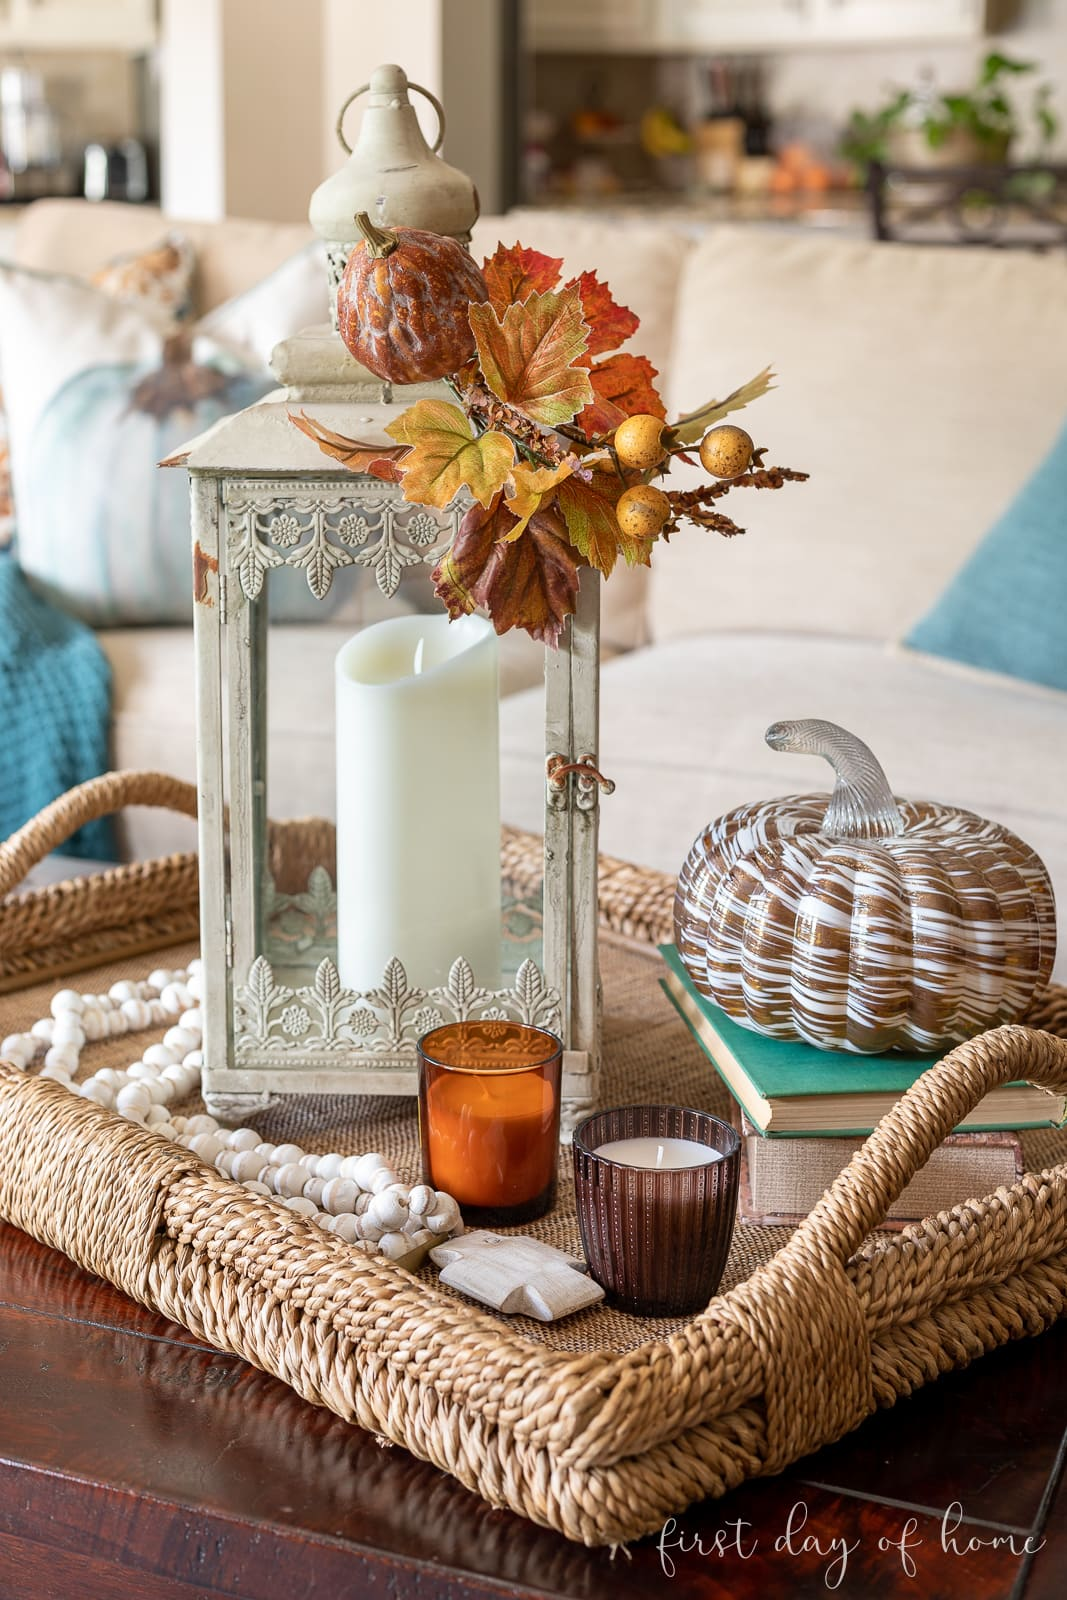 Fall centerpiece on coffee table with amber glass candles and glass pumpkin decor on books